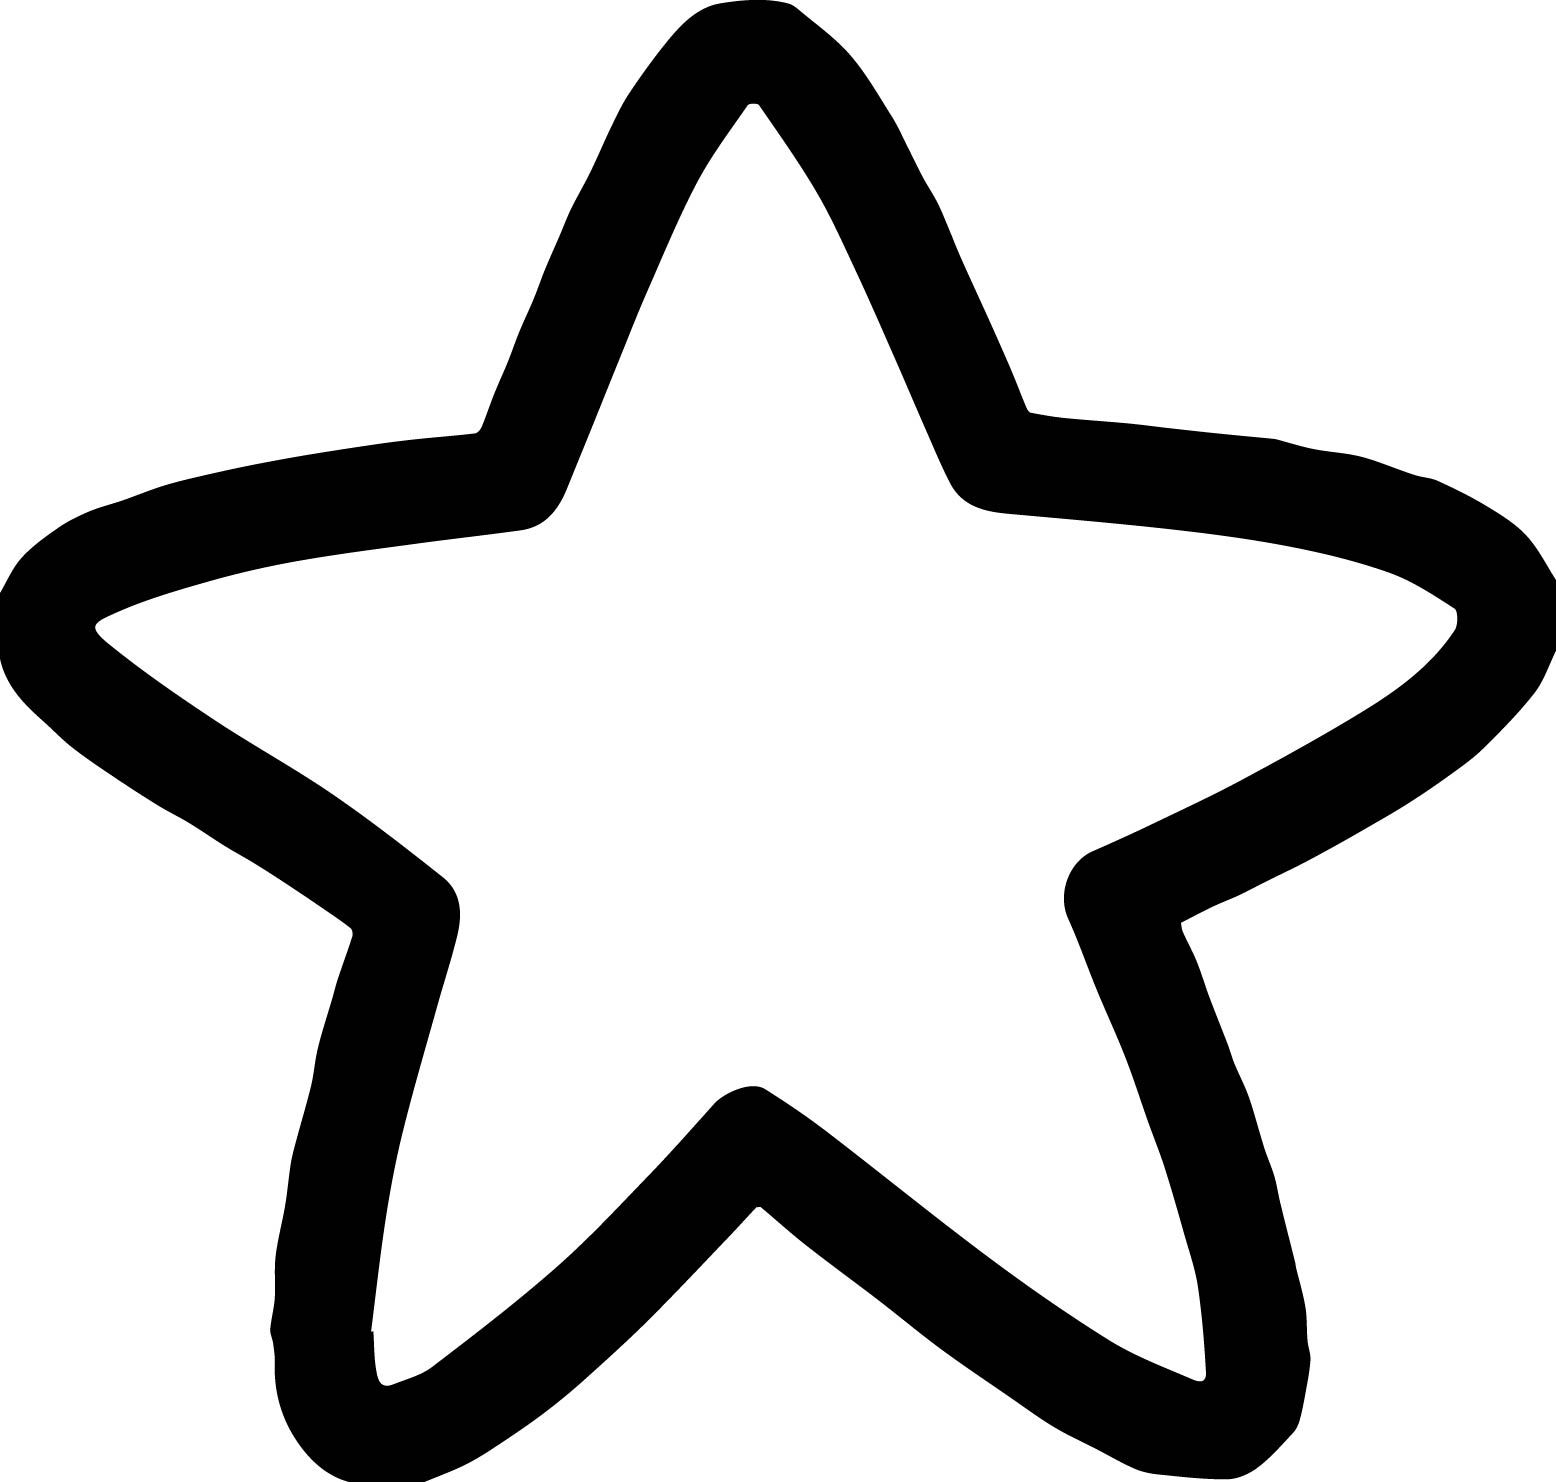 Cool Simple Star Coloring Page Star Coloring Pages Shape Coloring Pages Cartoon Coloring Pages